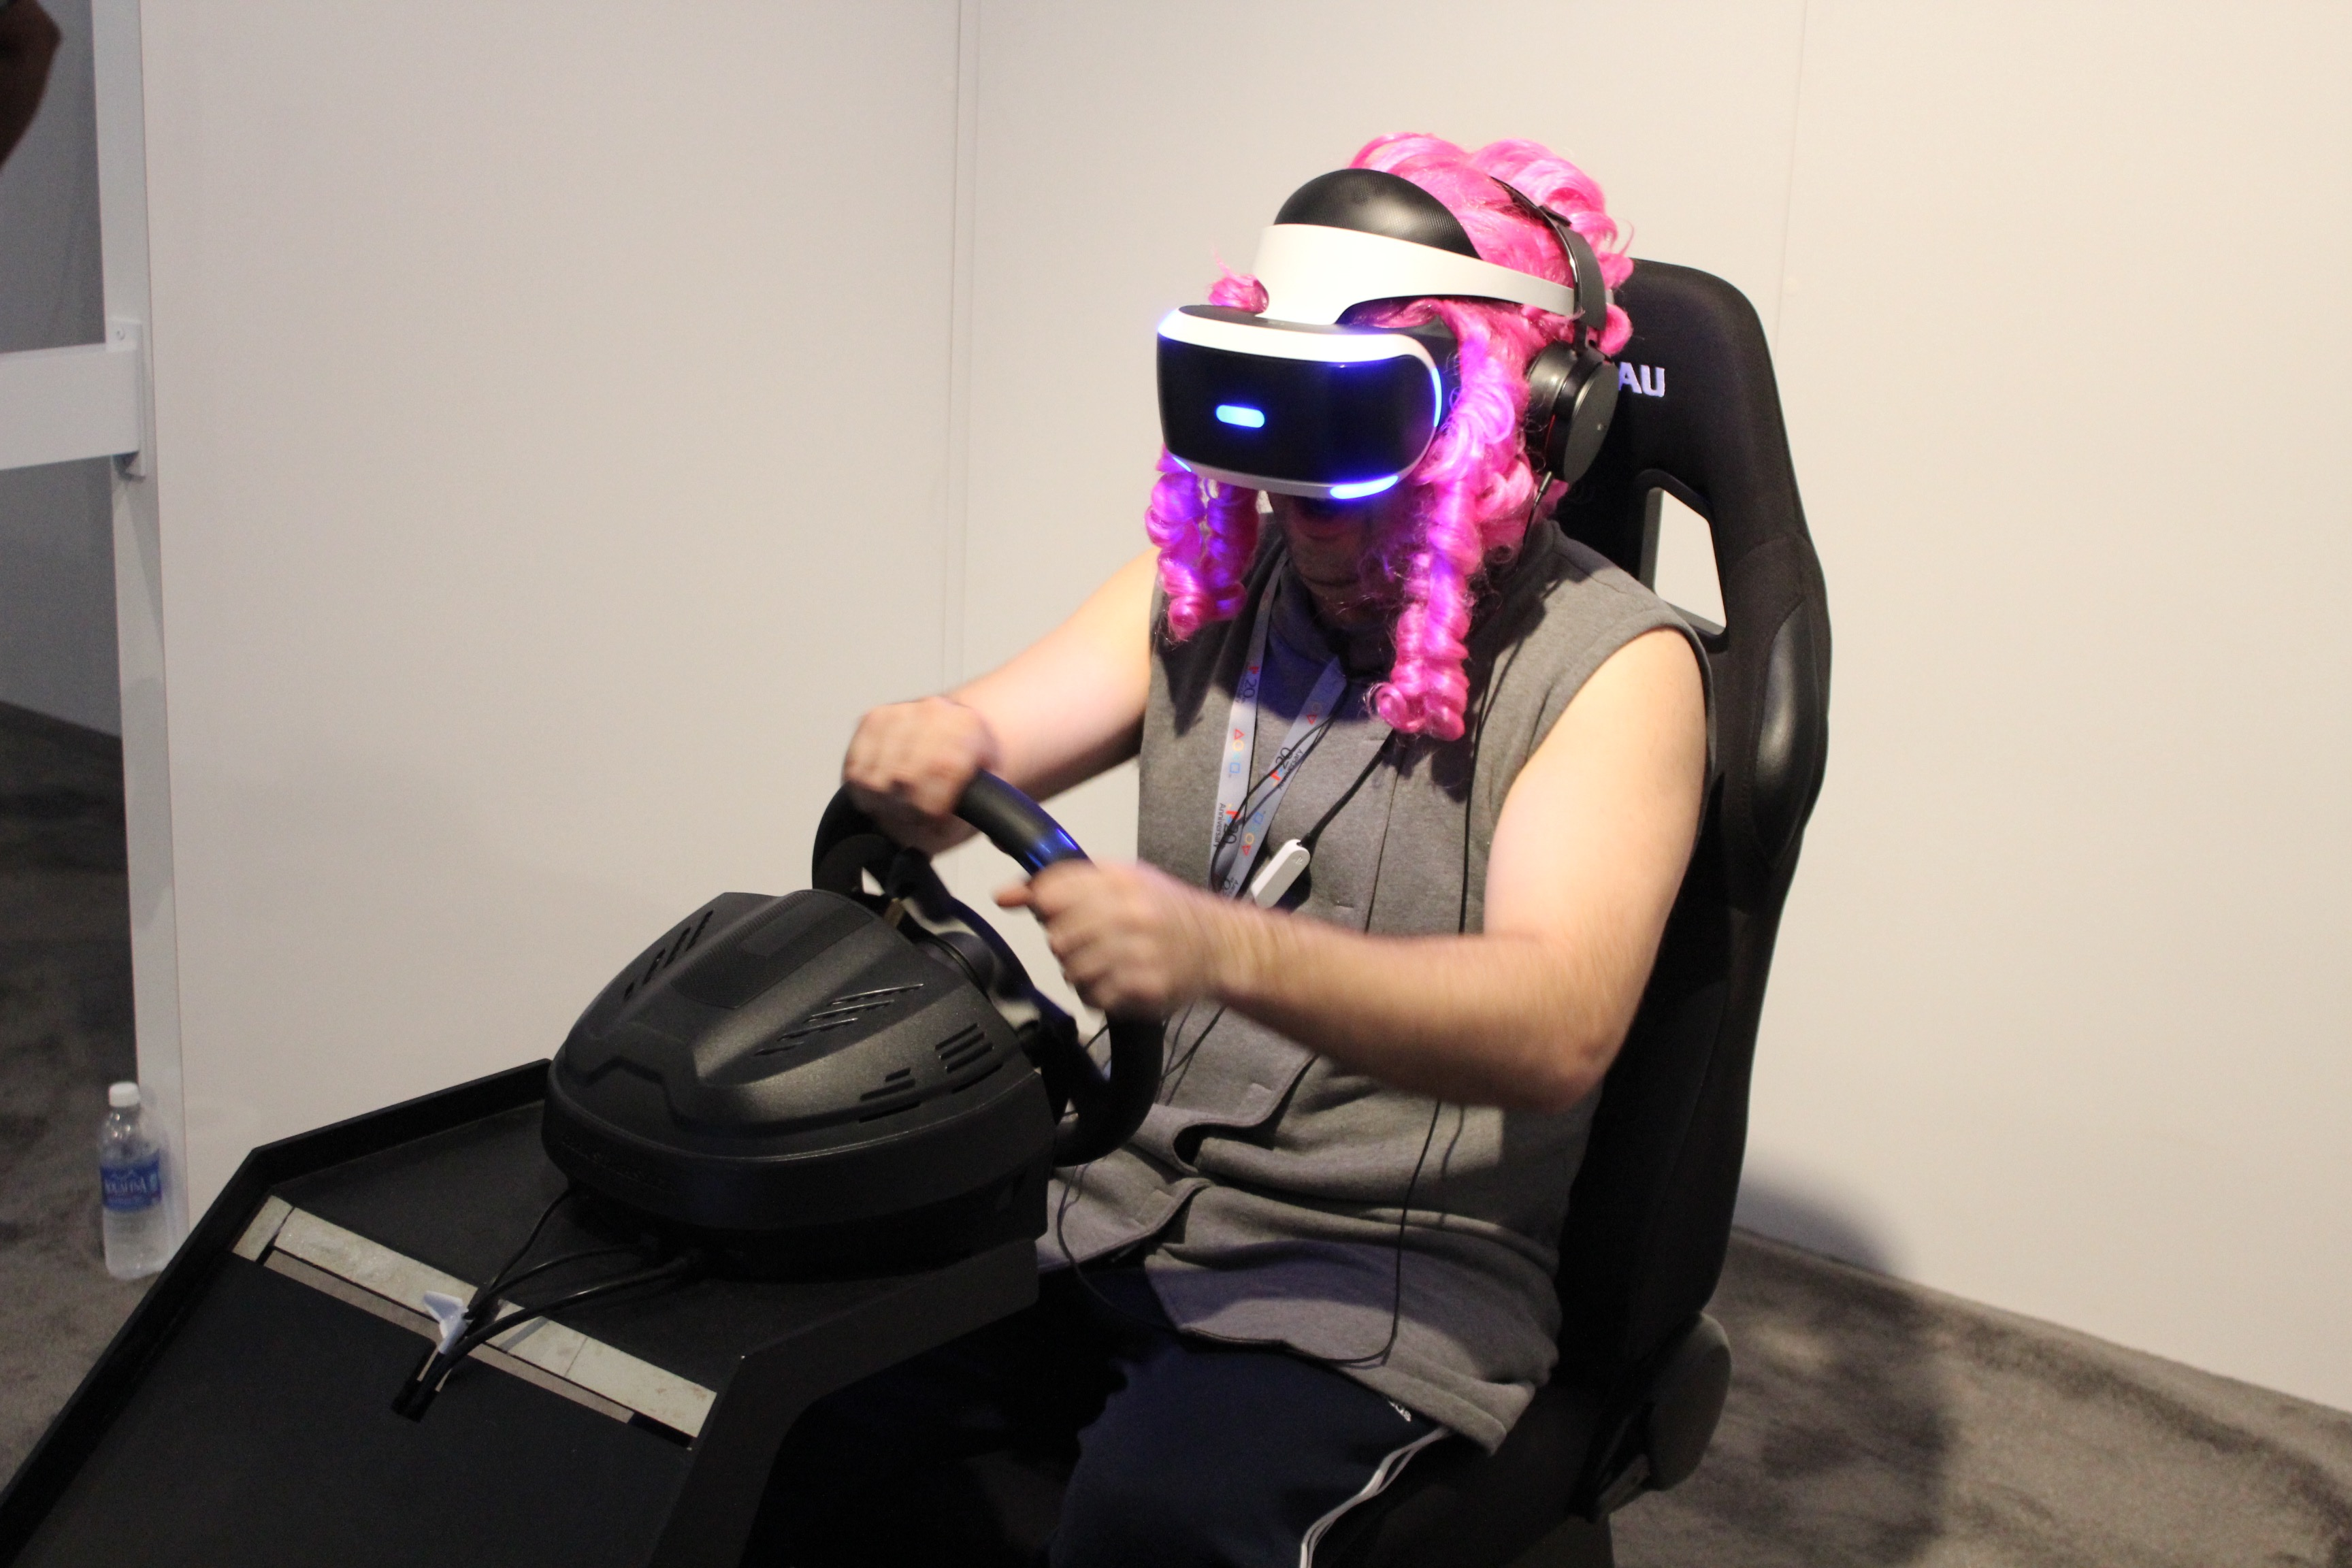 The <em>Driveclub VR</em> demo wasn't improved by its steering wheel and driving seat combo. Might've been better with that guy's wig, though.